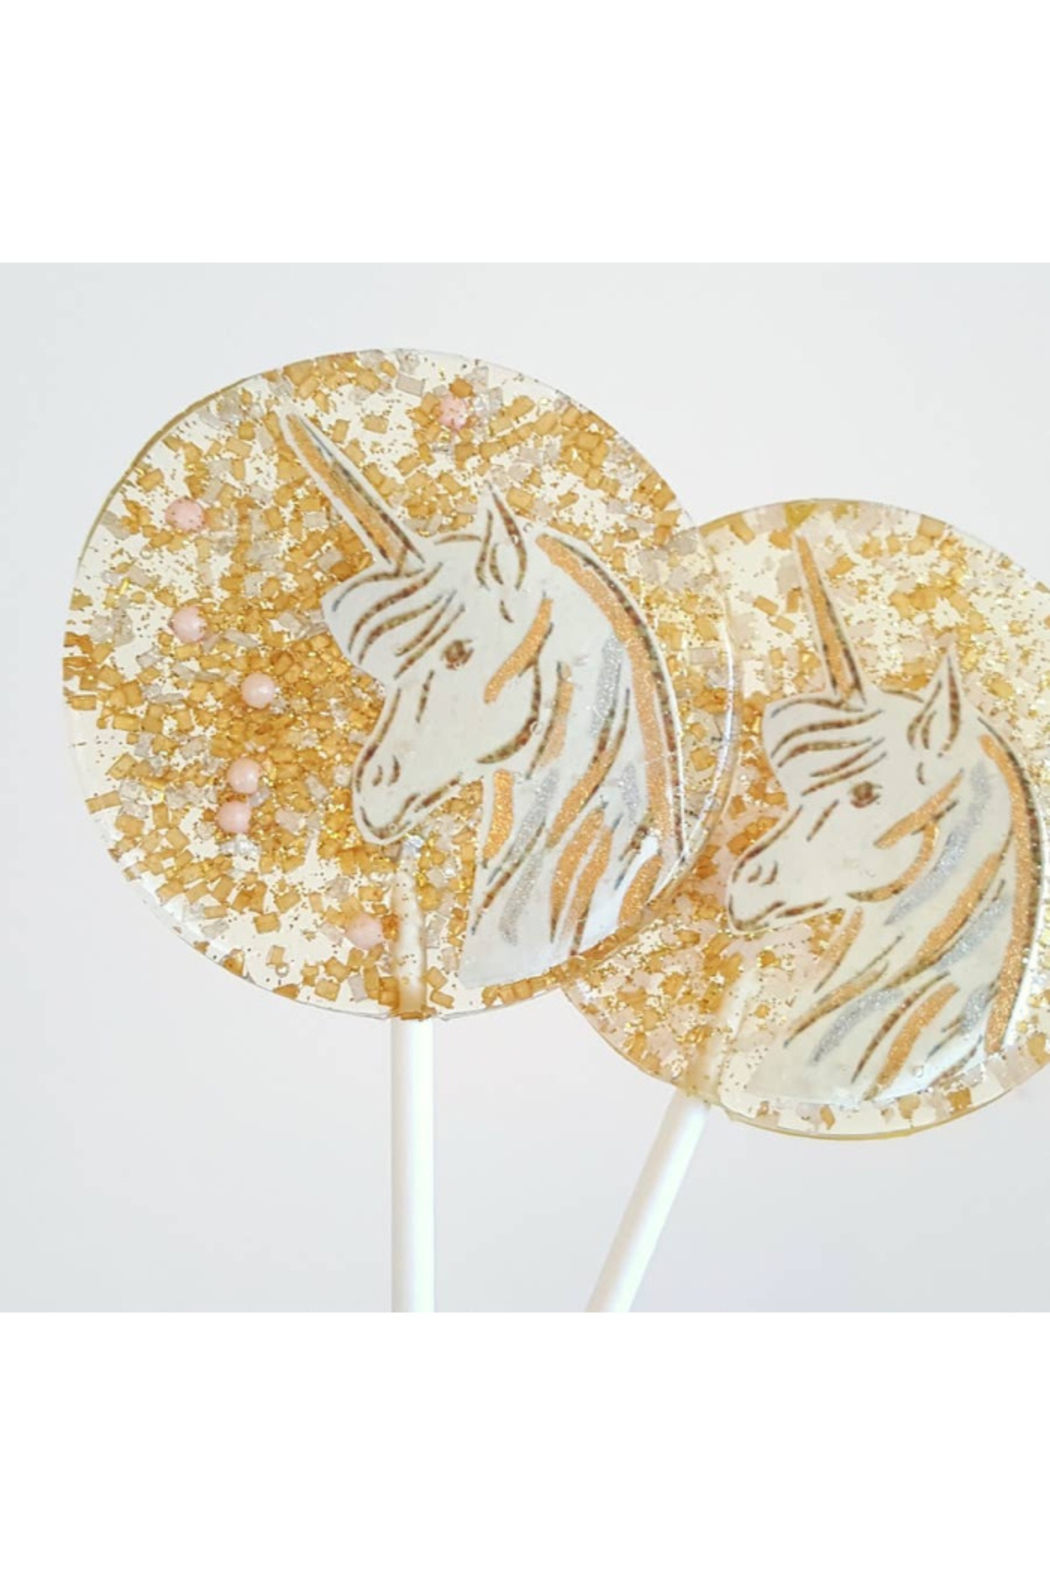 The Birds Nest GOLD & PINK UNICORN LOLLIPOPS - Front Cropped Image